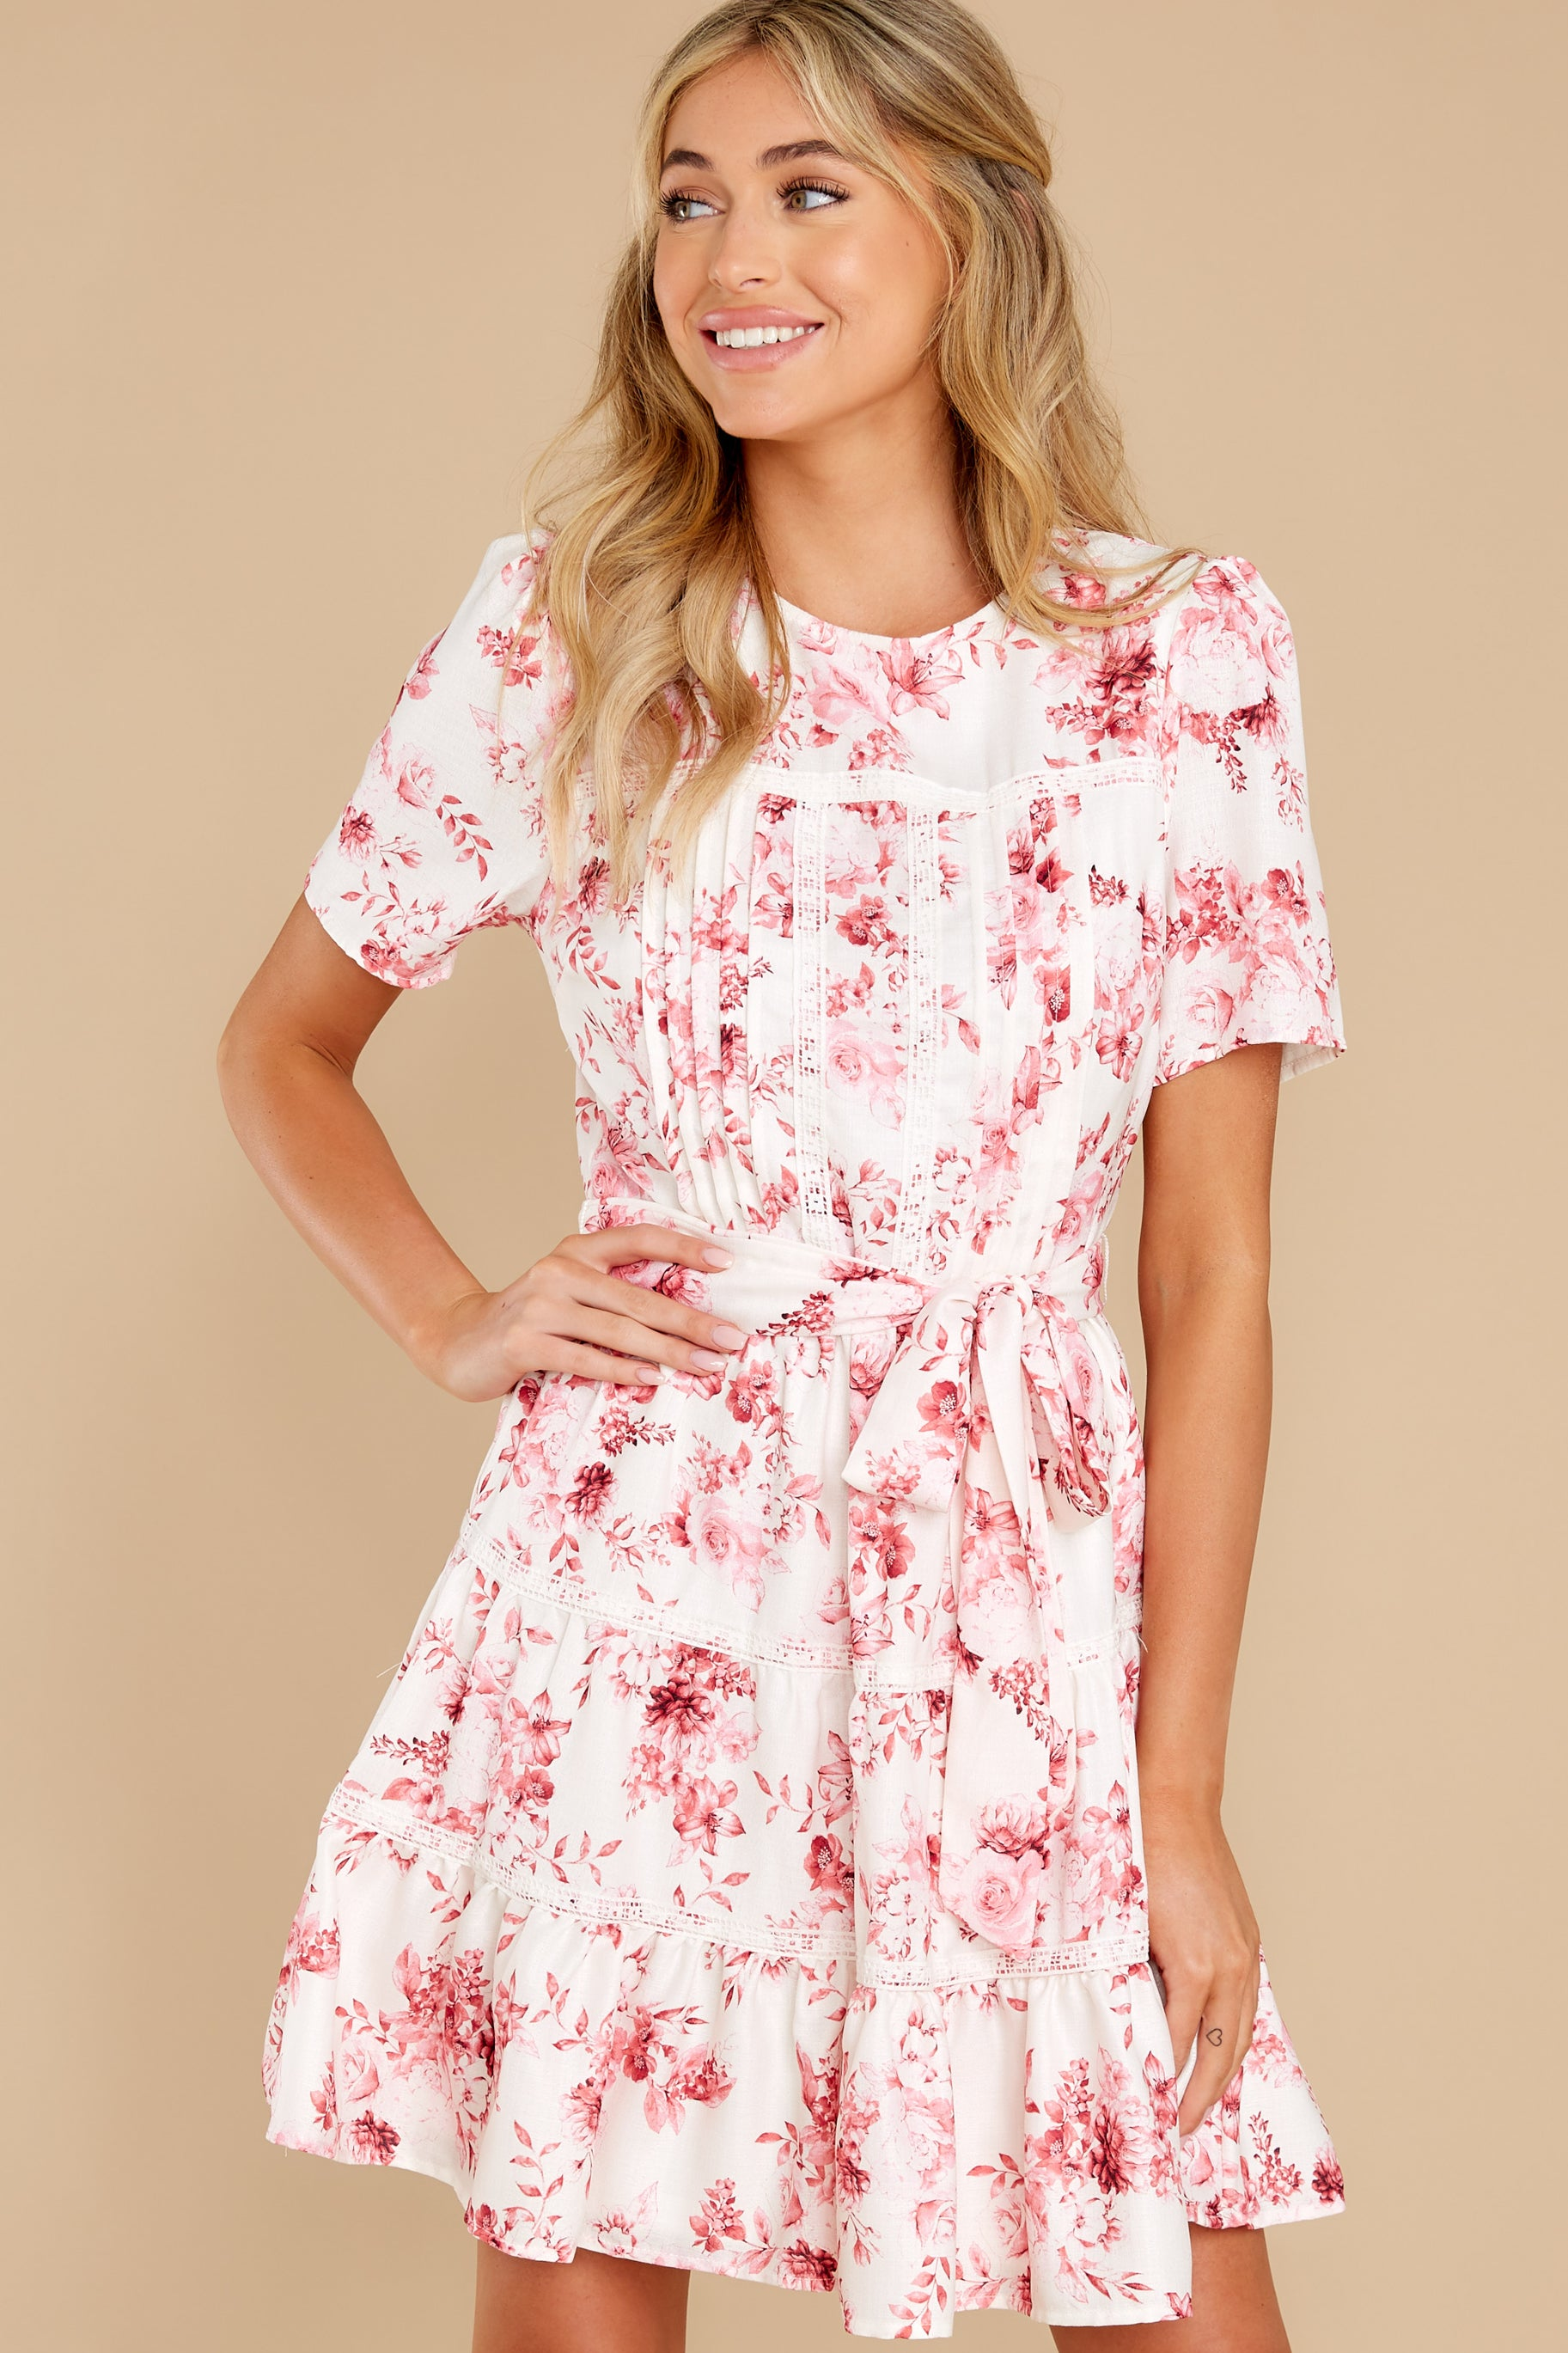 1 Curious Hearts Pink Floral Print Dress at reddress.com